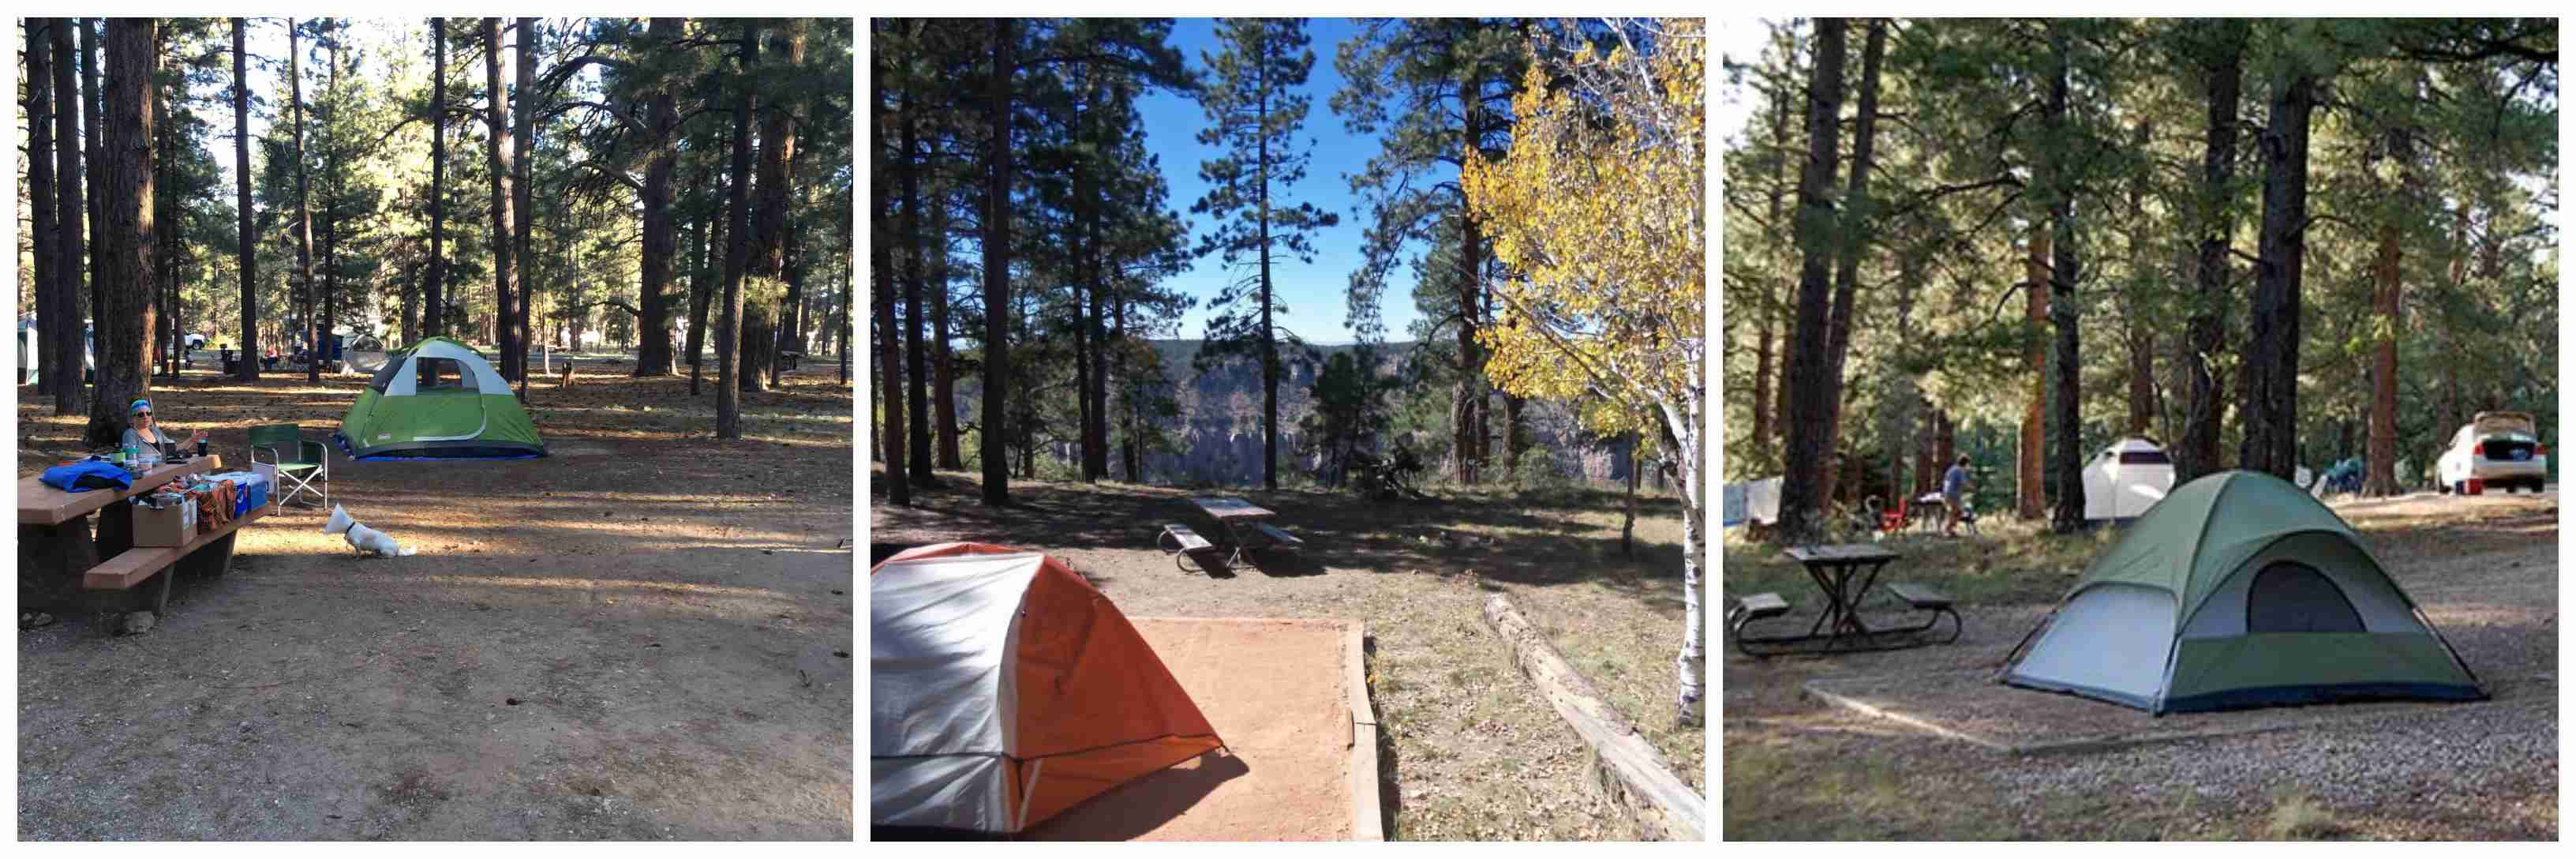 two separate camping sites at the Bright Angel Campground